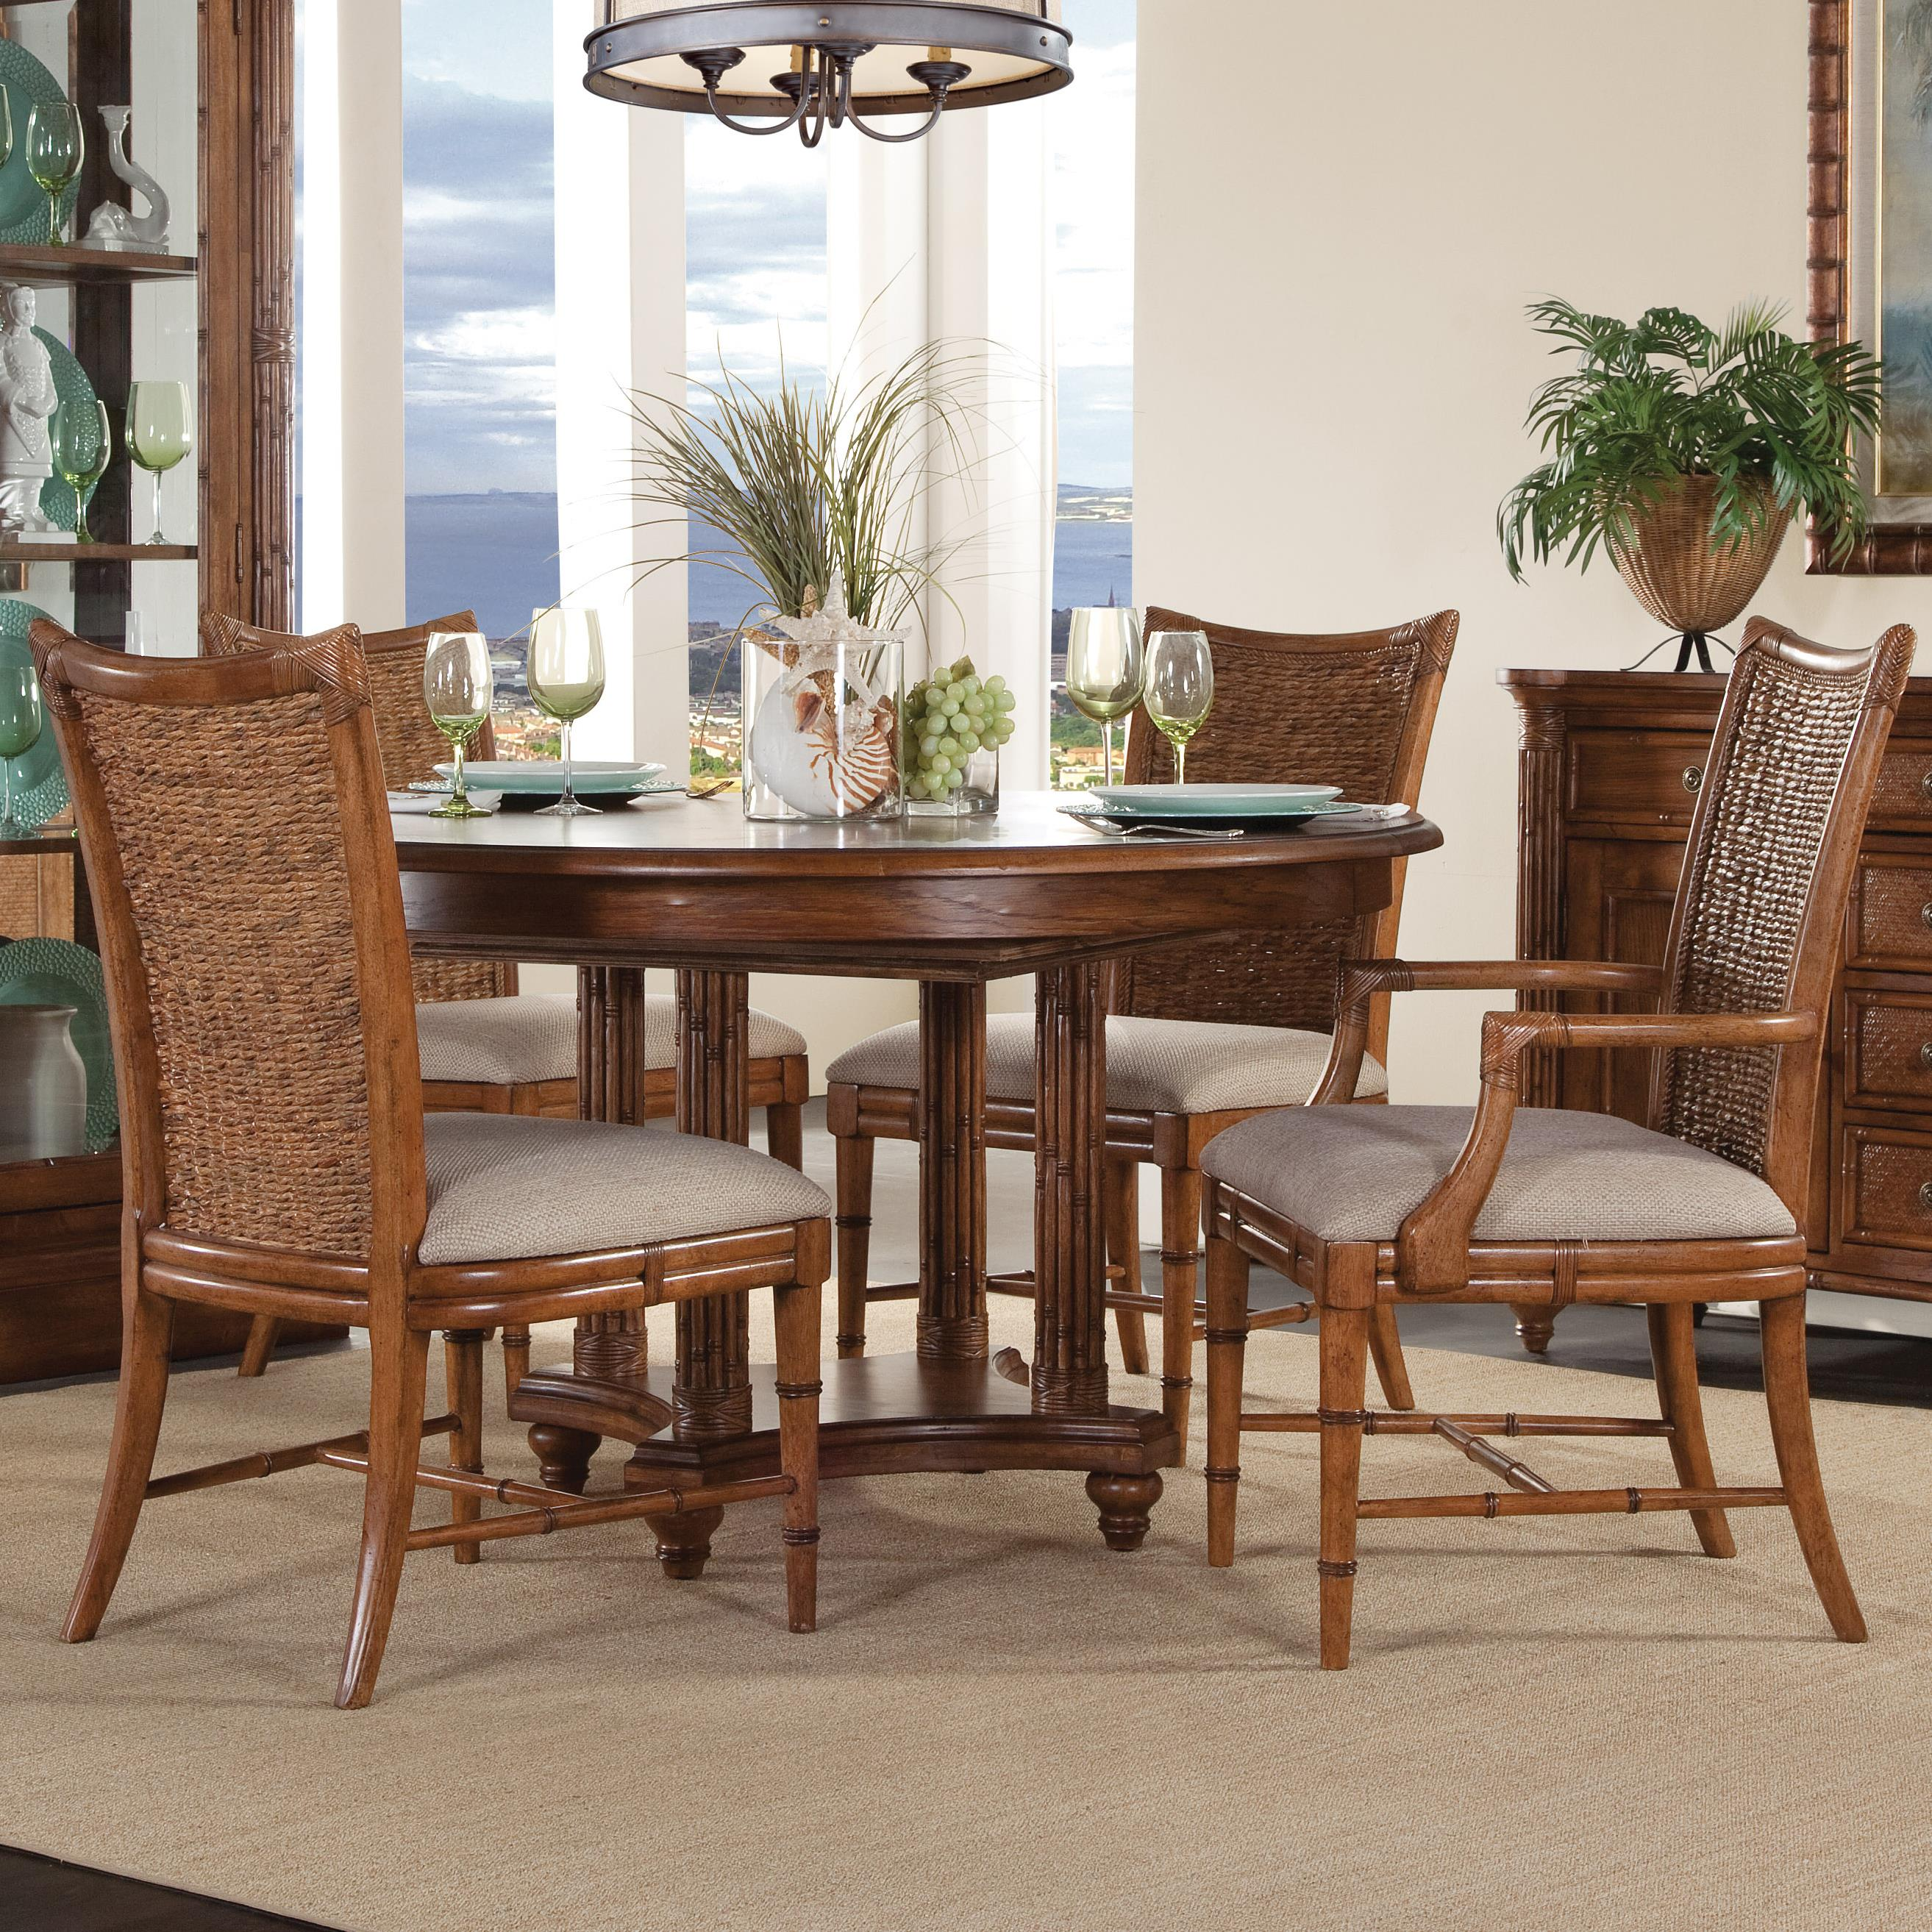 Lacquer Craft USA Paradise Bay 5 Piece Round Dining Package - Item Number: 9005-370 PARADISE BAY